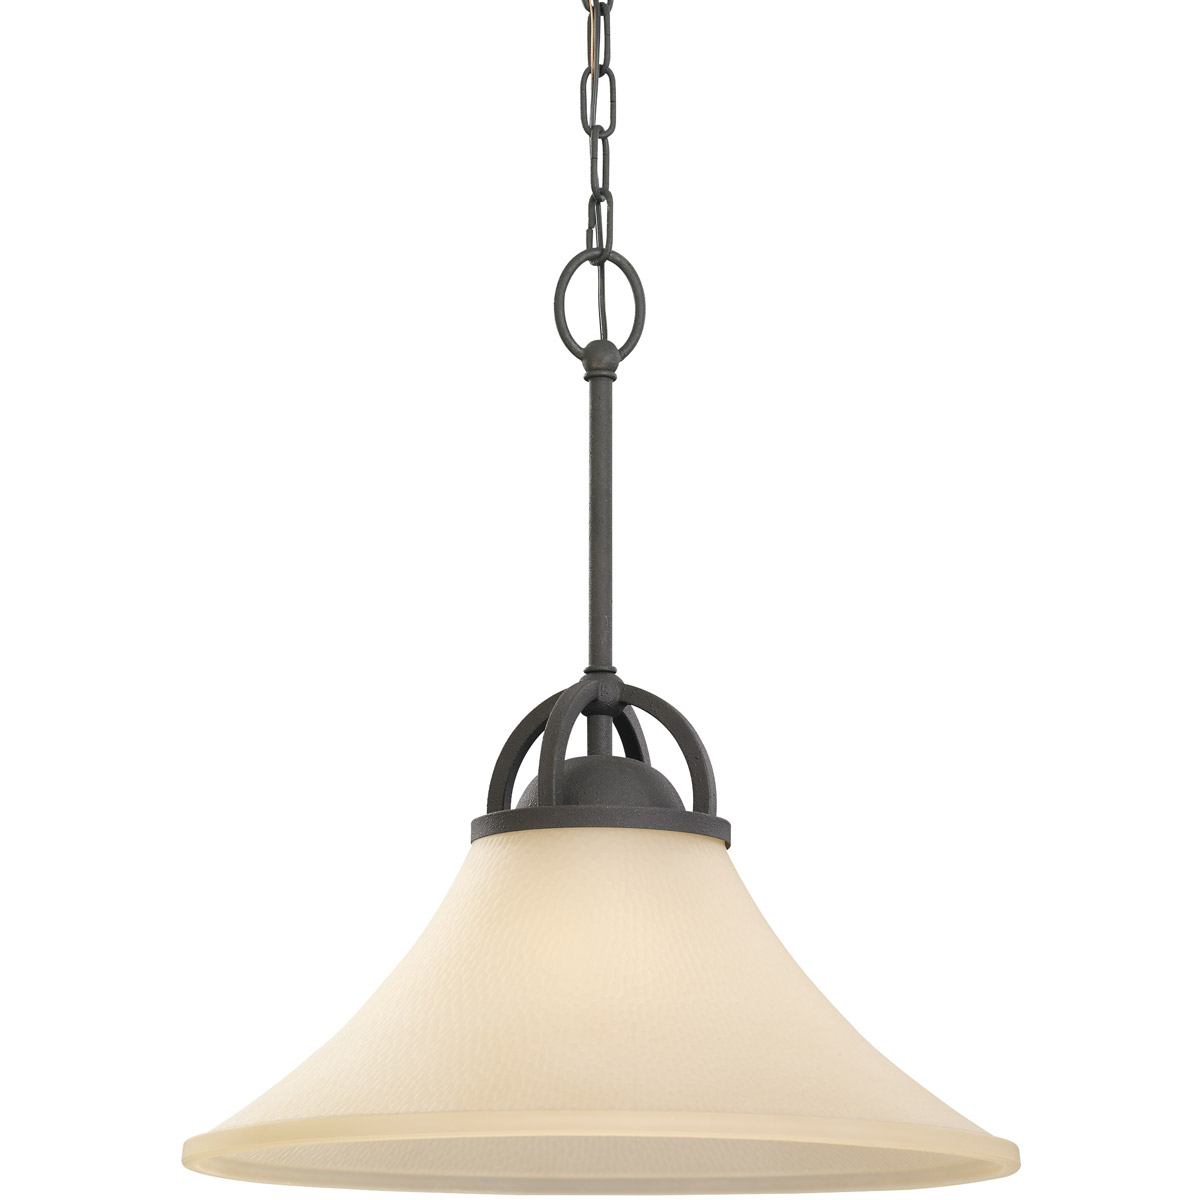 Sea Gull 65375-839 Somerton 1 Light 16 inch Blacksmith Pendant Ceiling Light in Cafe Tint Glass, Standard photo